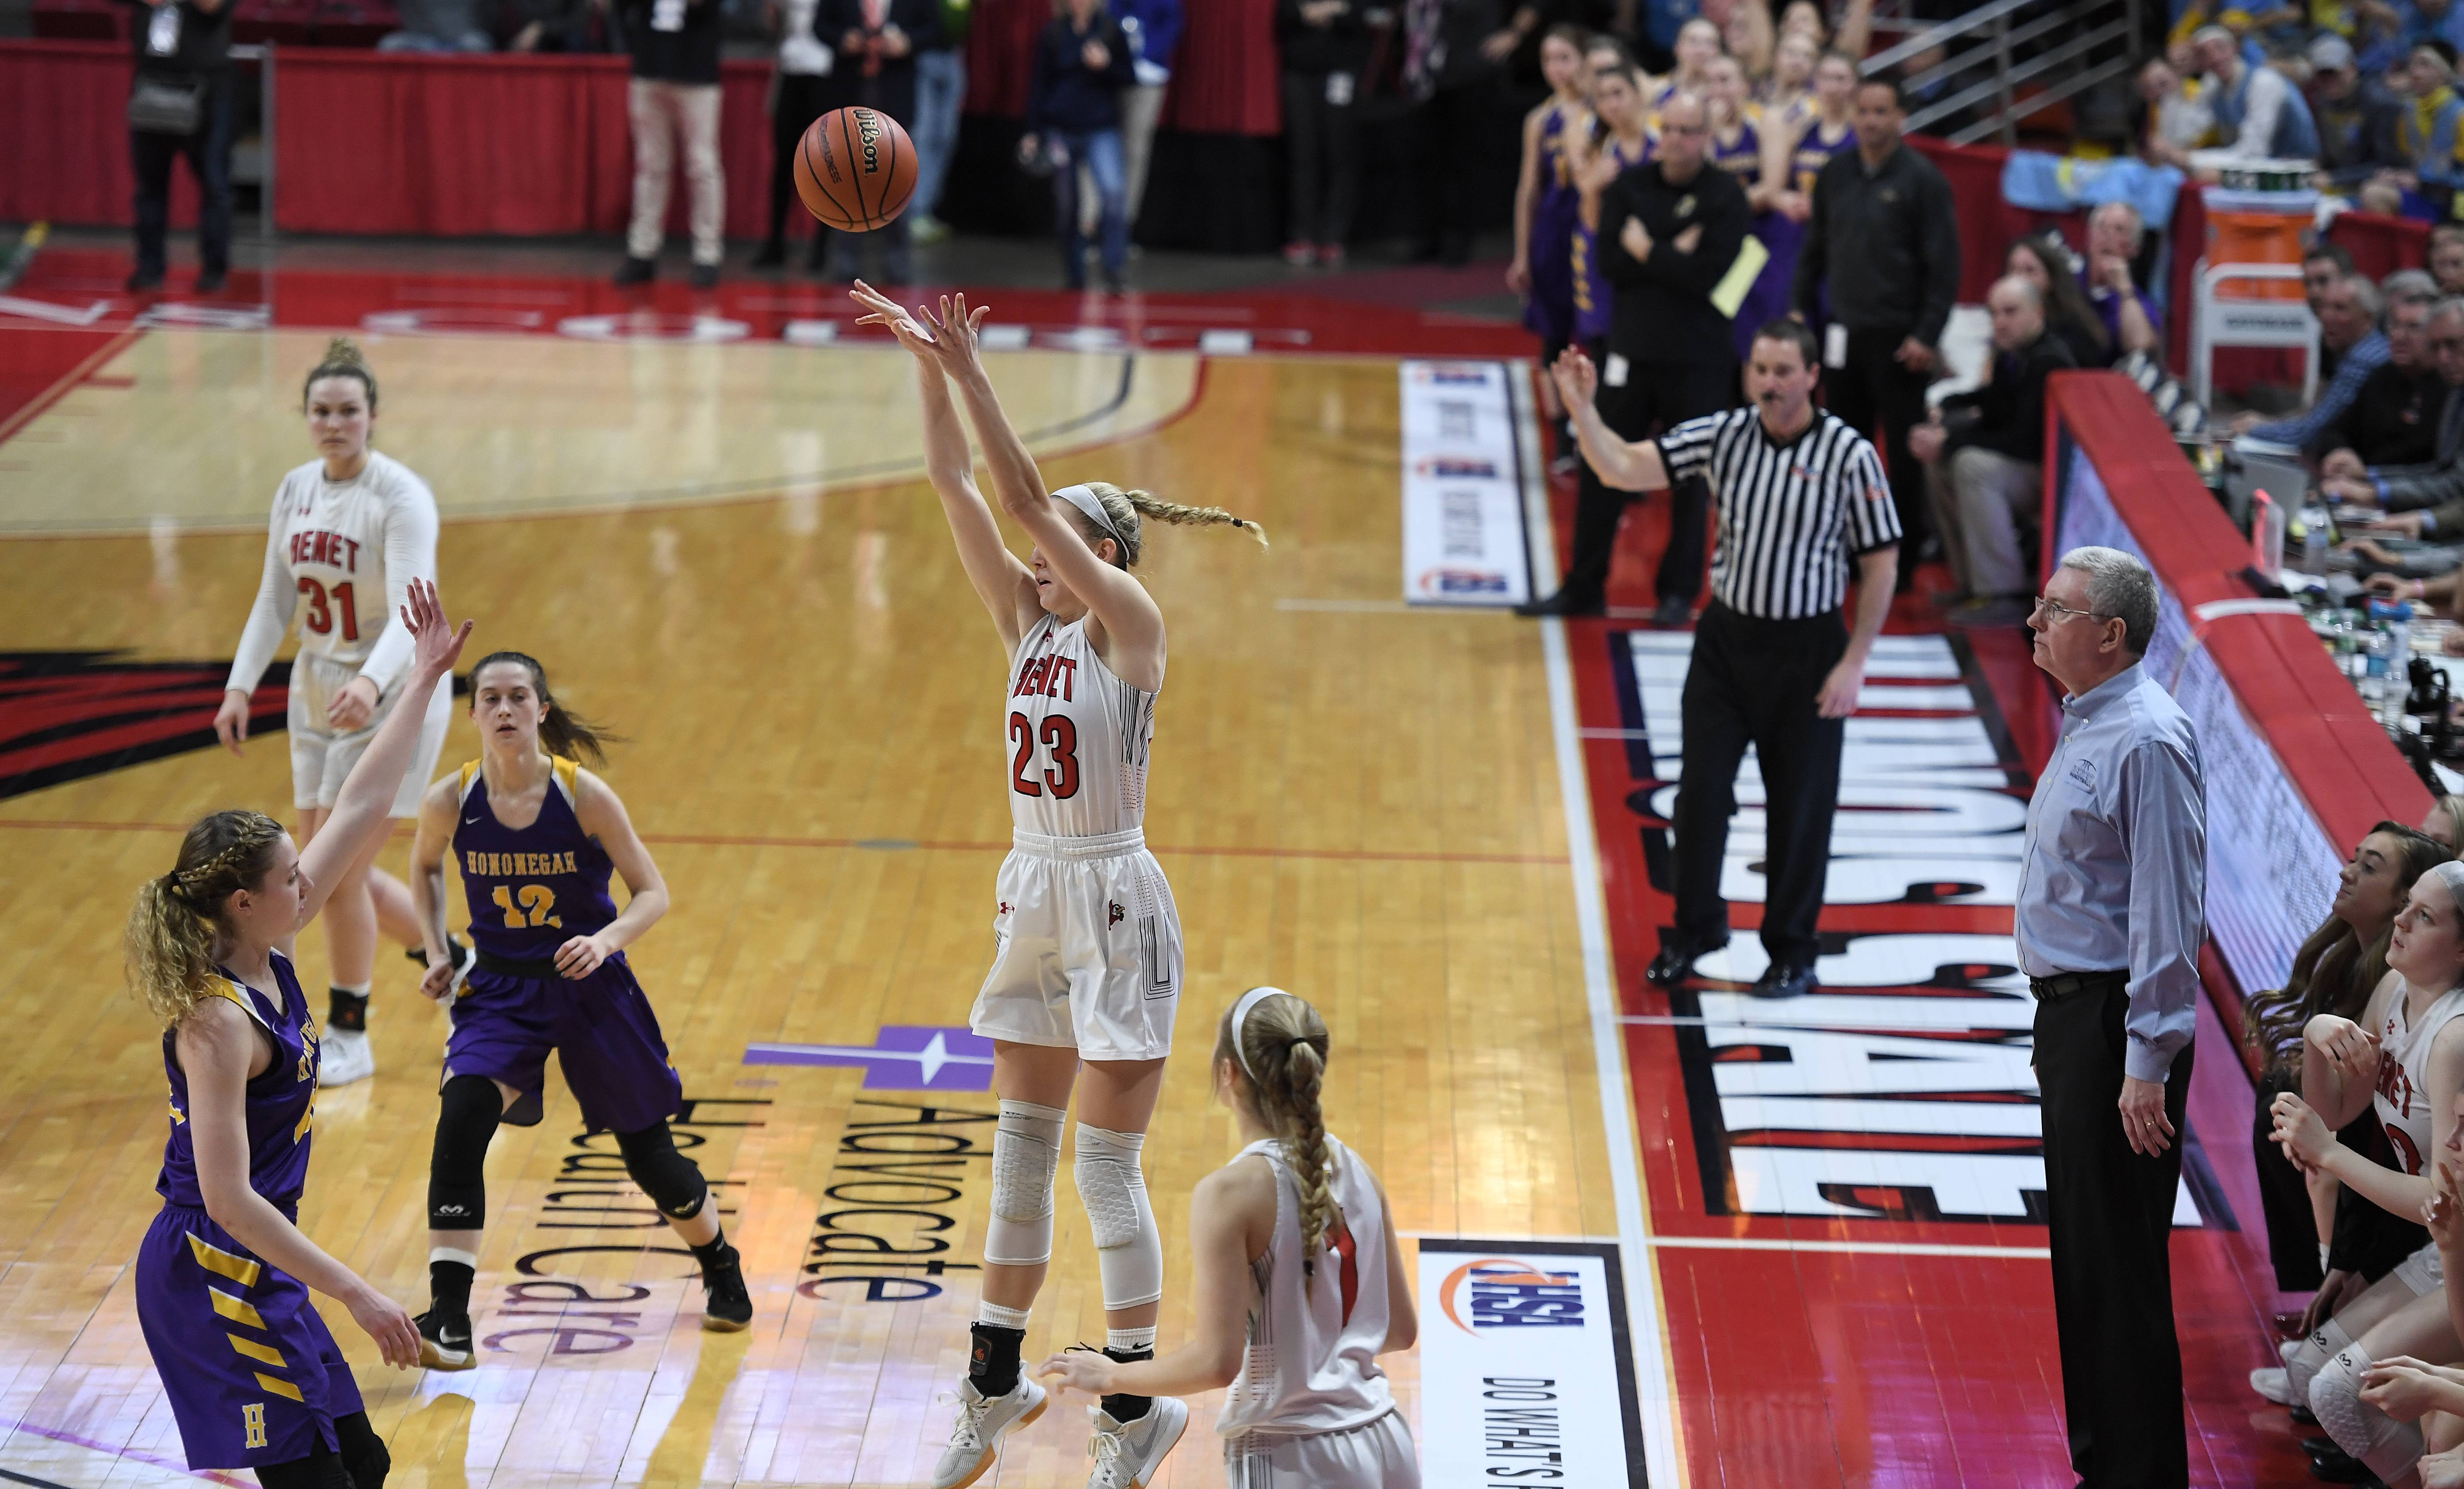 Benet Academy's Lauren Stack shoots one last time in the last few seconds of the game in which Hononegah beat Benet Academy 43-39 in Class 4A girls state basketball third-place game in Normal on Saturday.